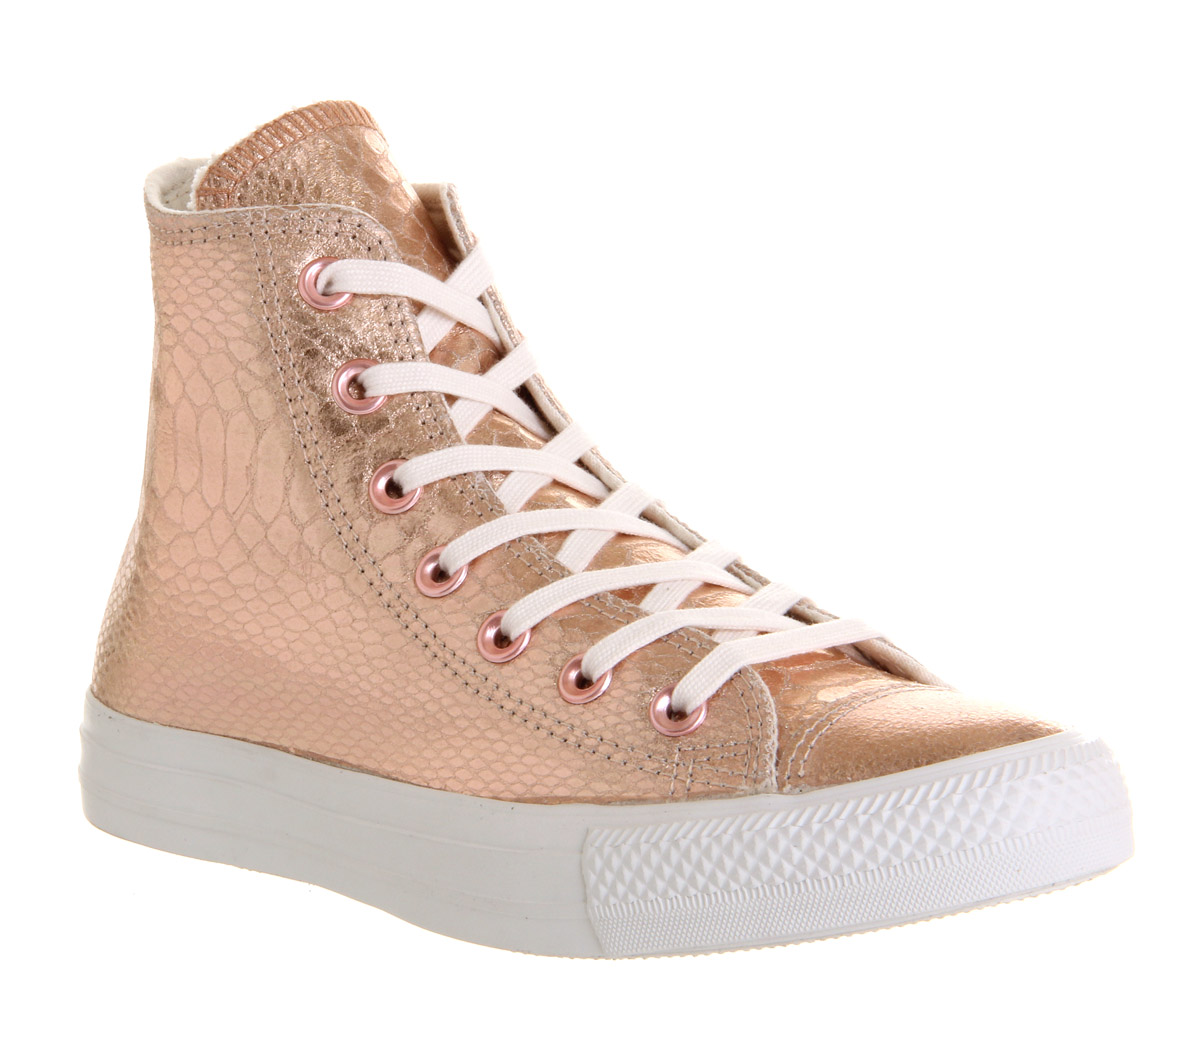 mens converse converse all star hi rose gold snake trainers shoes ebay. Black Bedroom Furniture Sets. Home Design Ideas